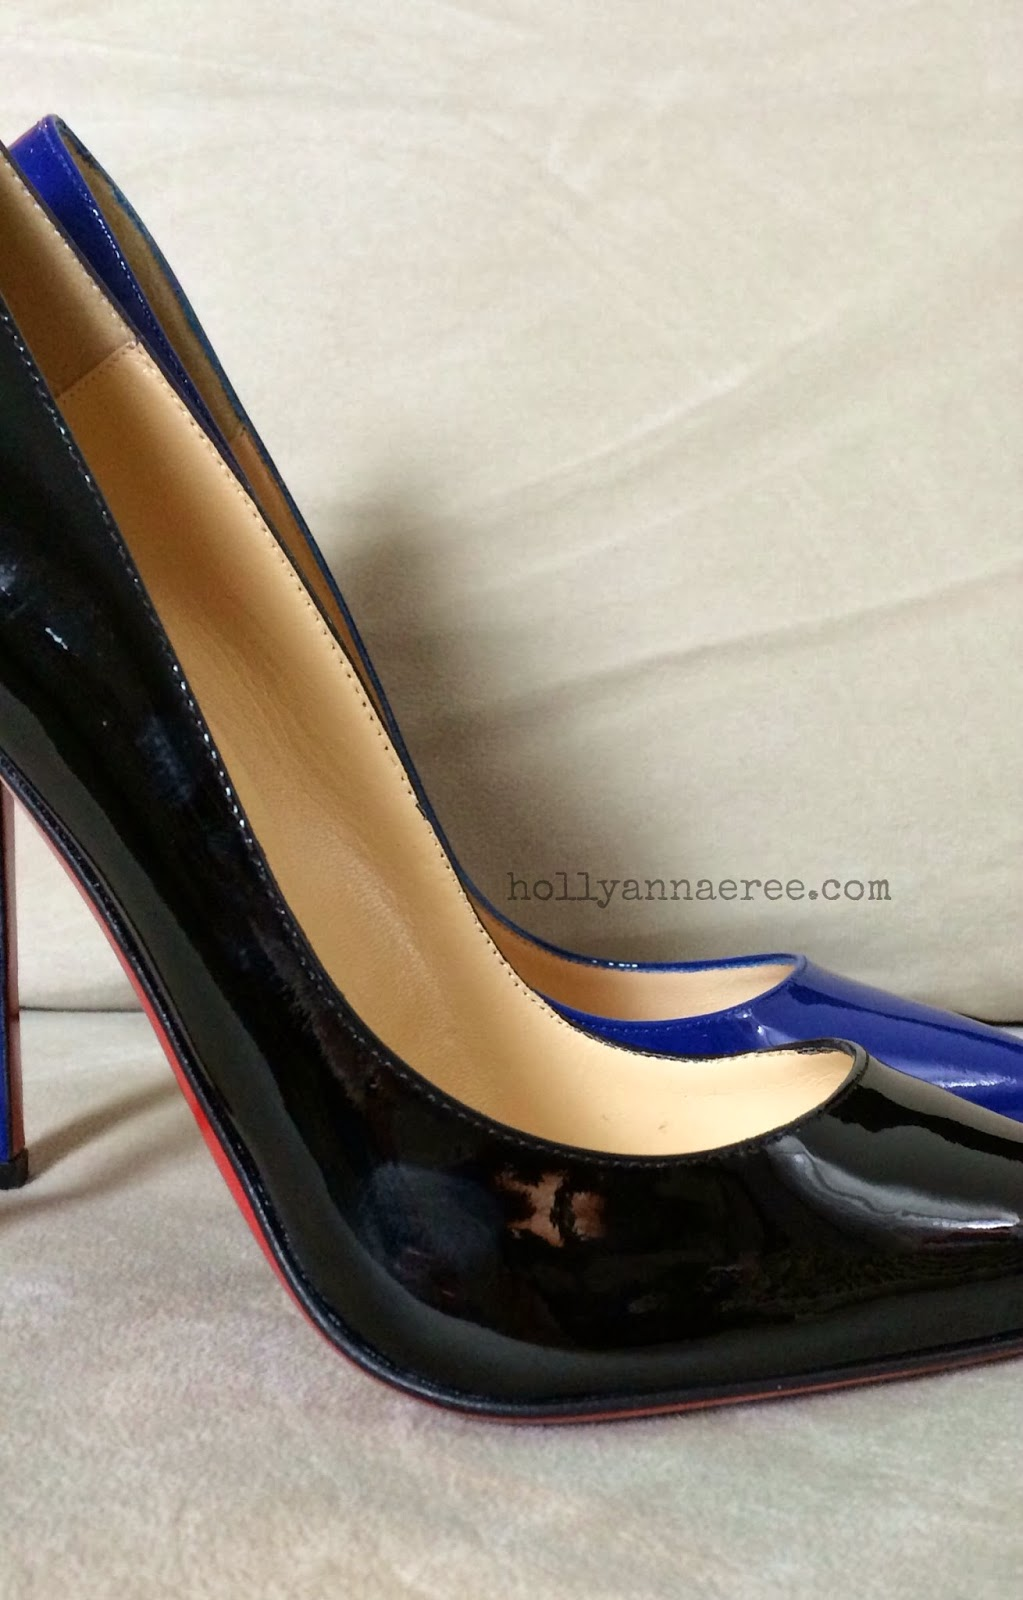 49e2a4982918 Both pairs were purchased from the Christian Louboutin website just at  different times. Personally from what I can see I like the old design a bit  better ...